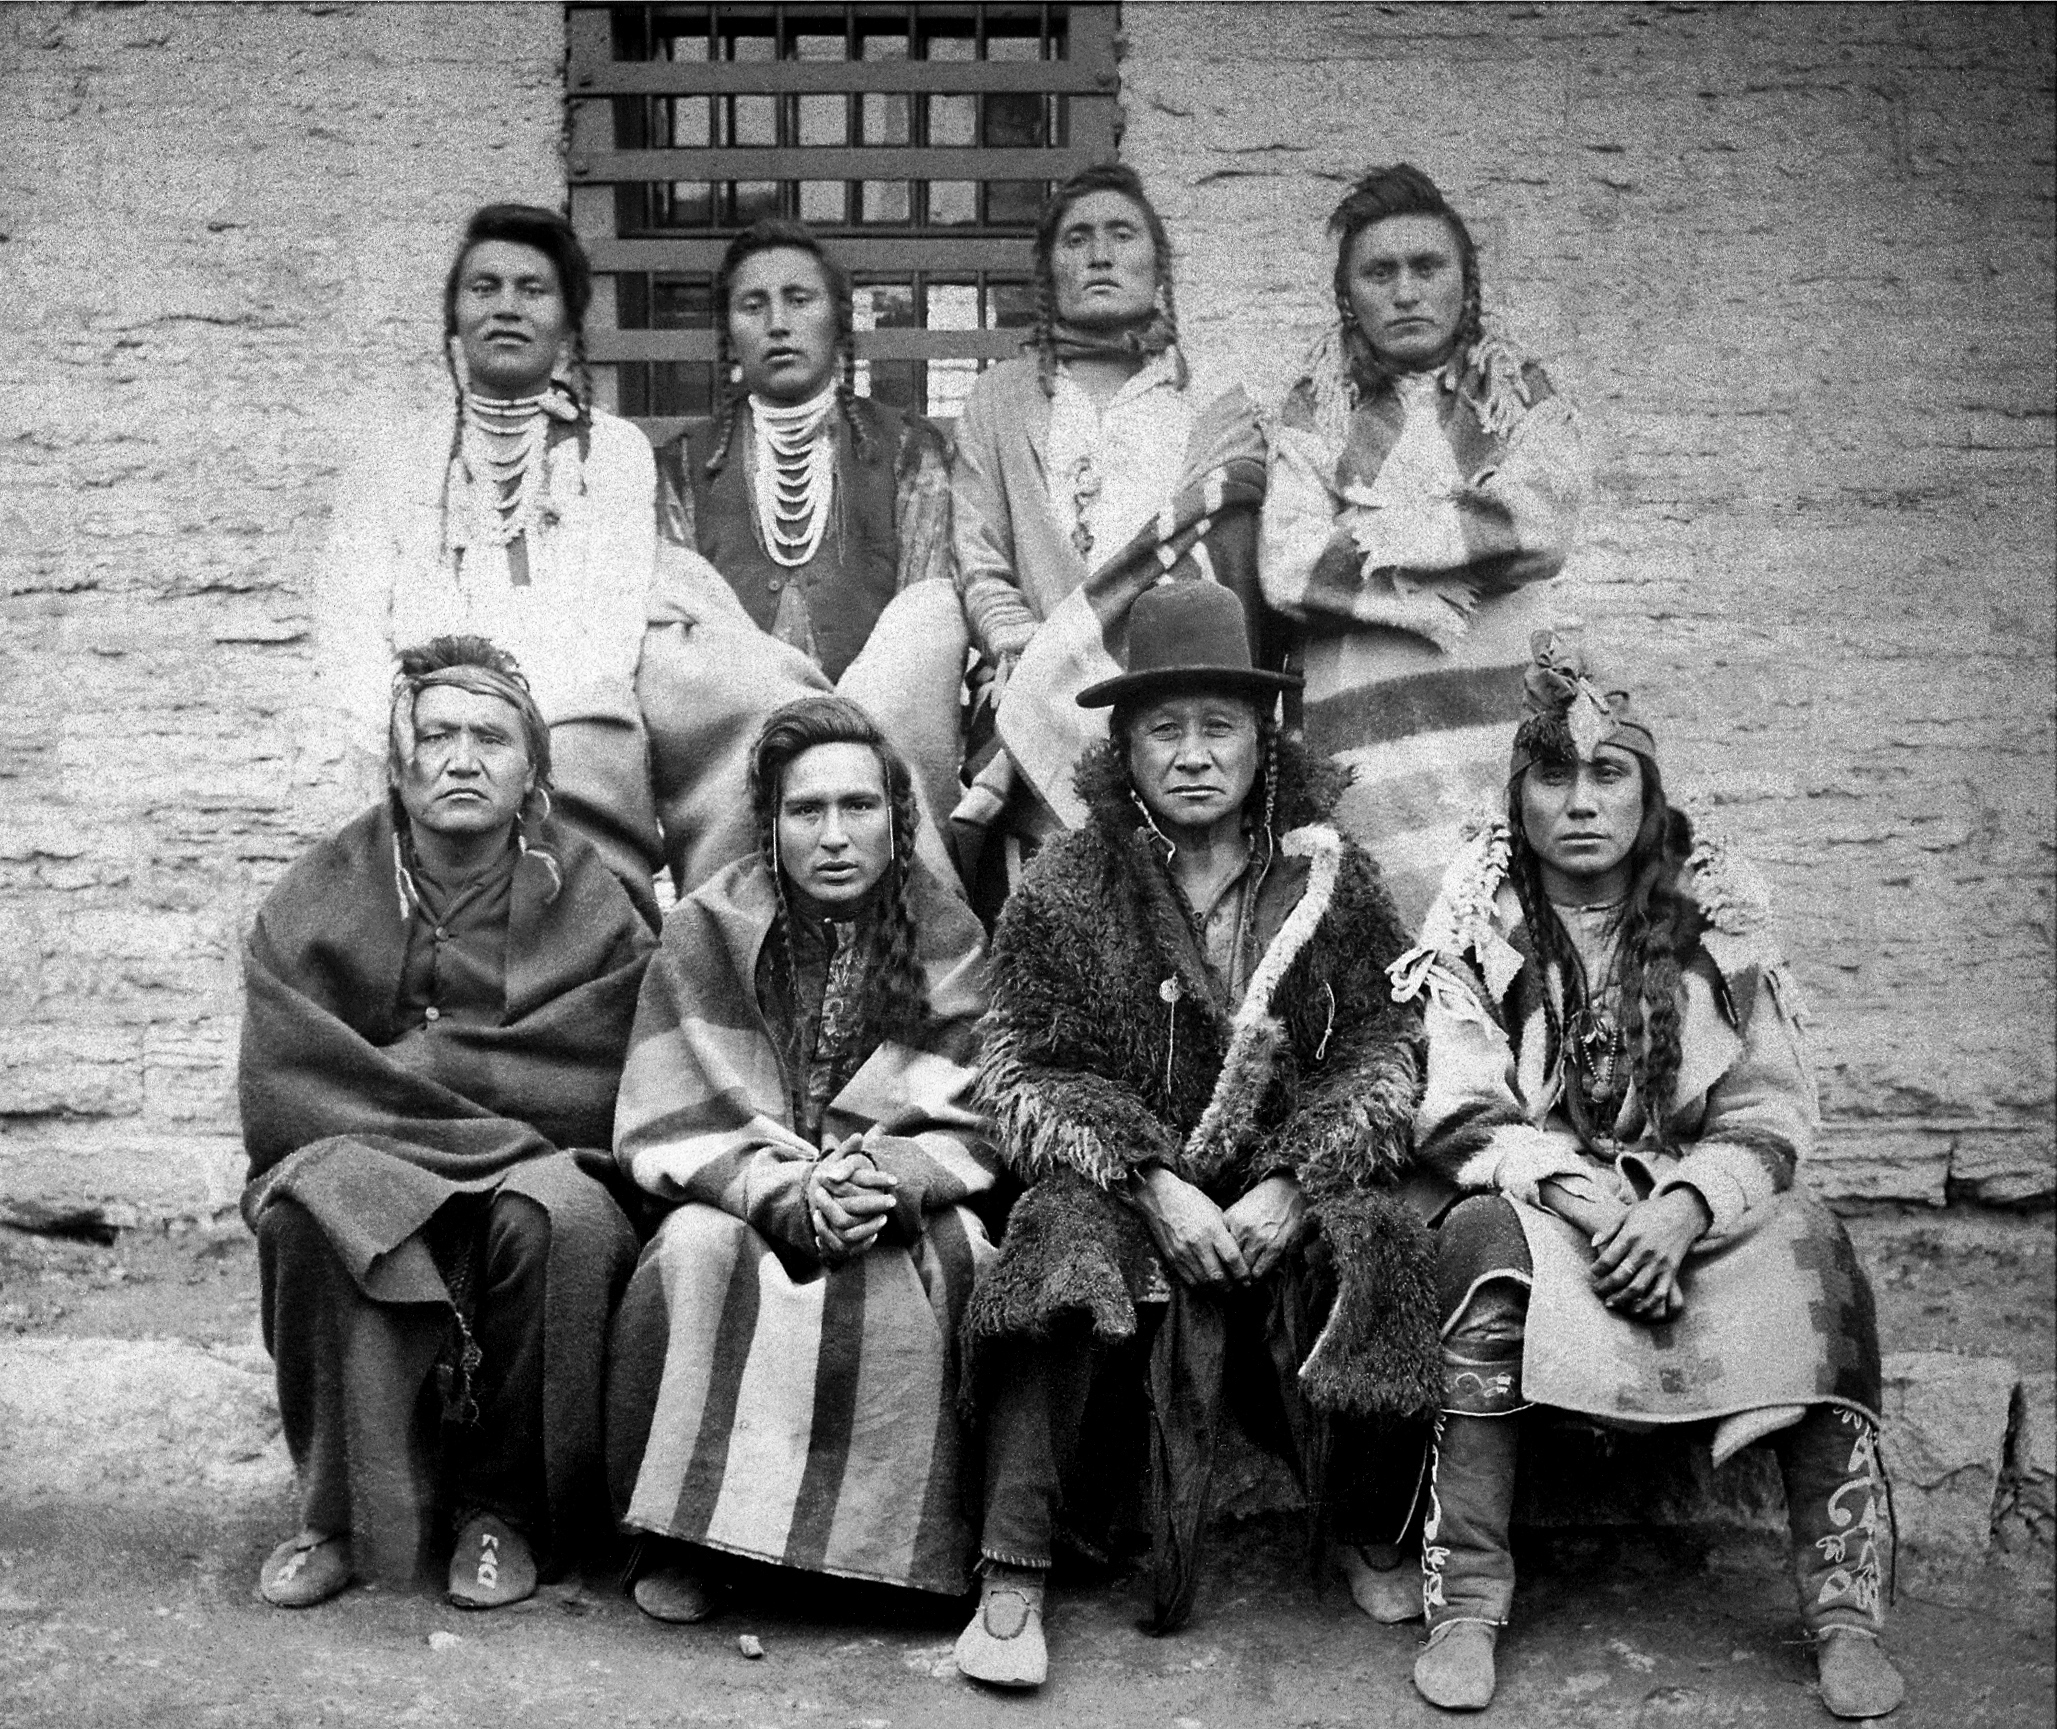 Montana Native Plants: File:Crow Indian Chiefs. Captured At Custer Battlefield